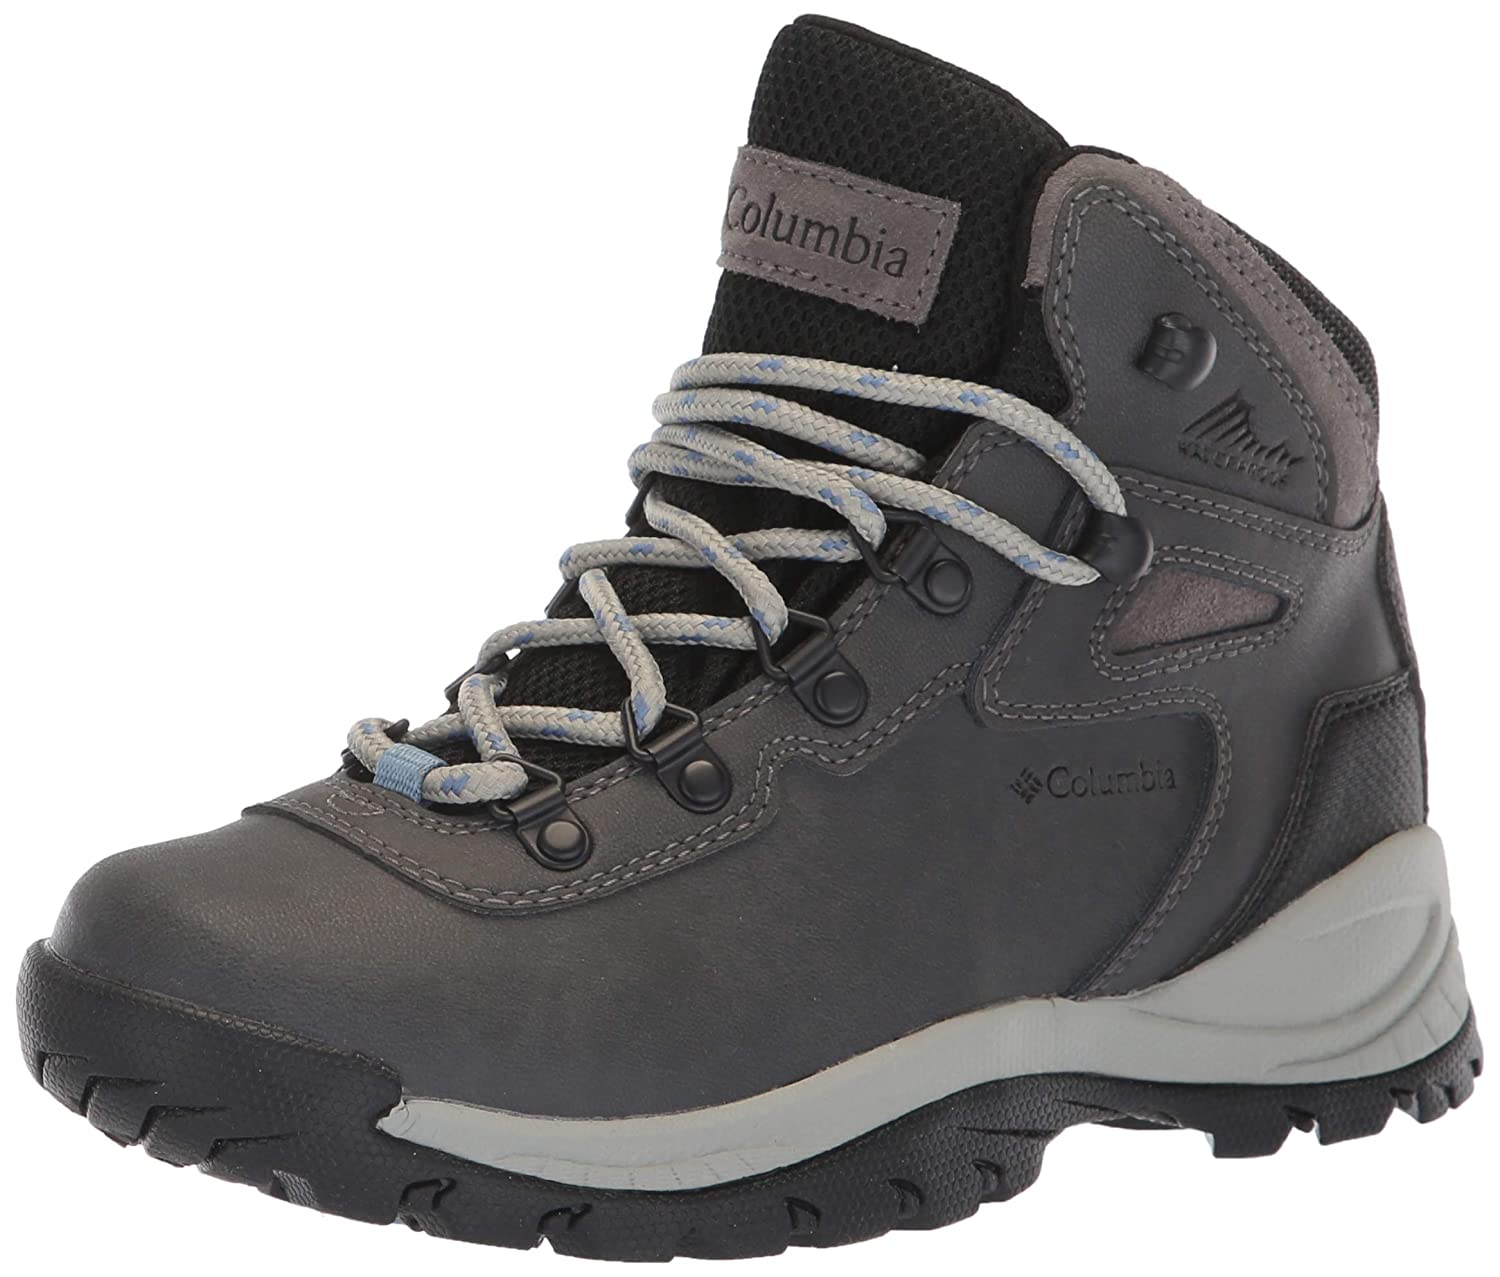 Quarry Cool Wave Columbia Women's Newton Ridge Plus Waterproof Hiking Boot, Breathable, High-Traction Grip